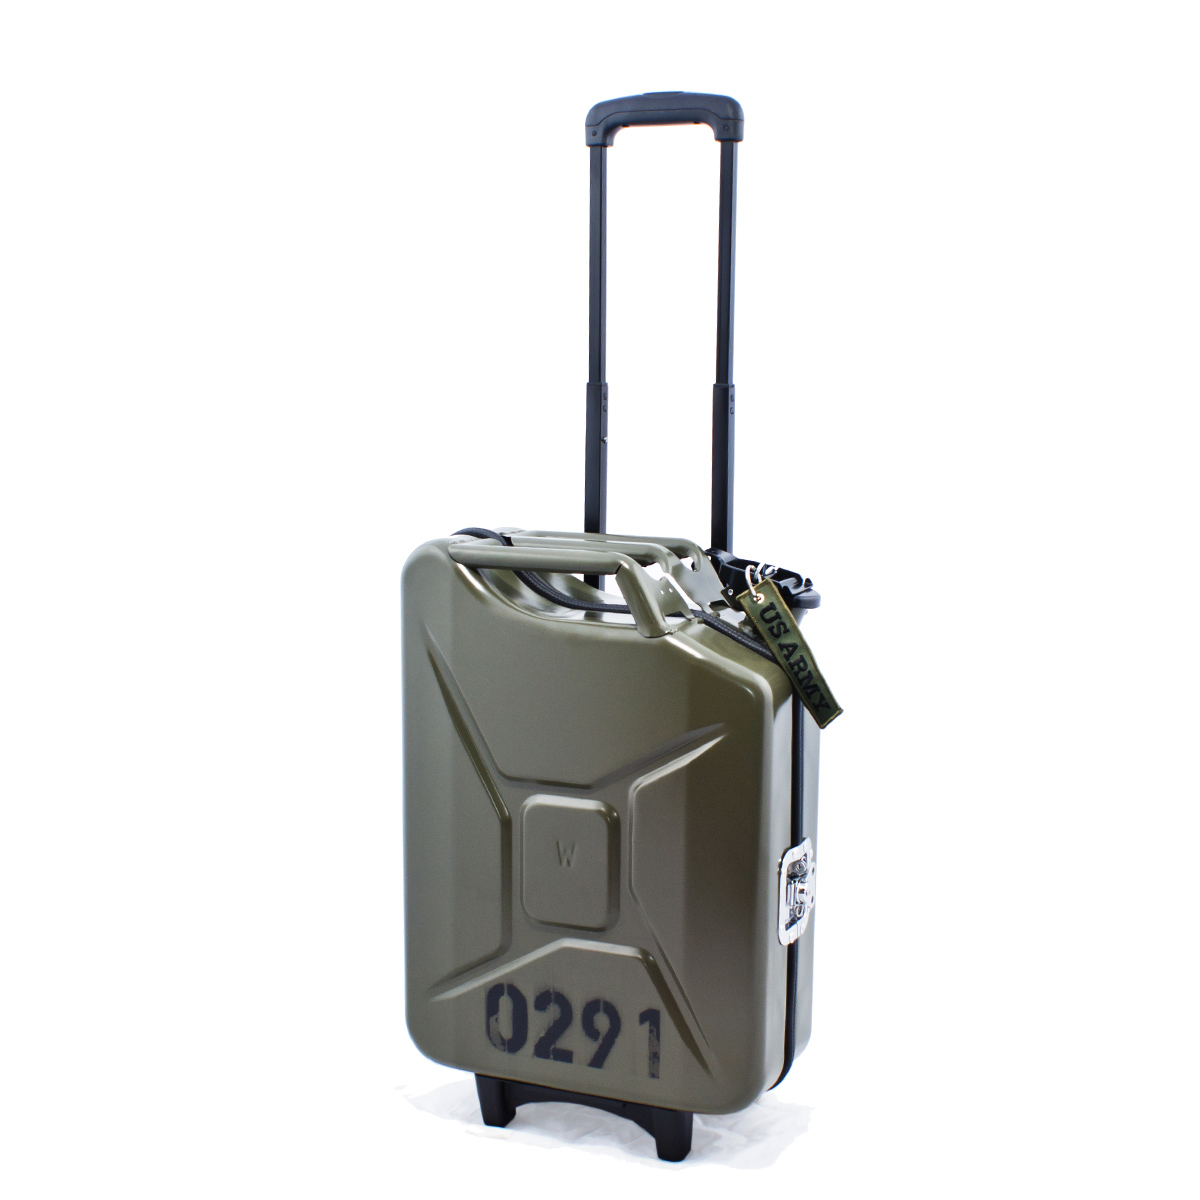 armygreen G-case jerrycan luggage